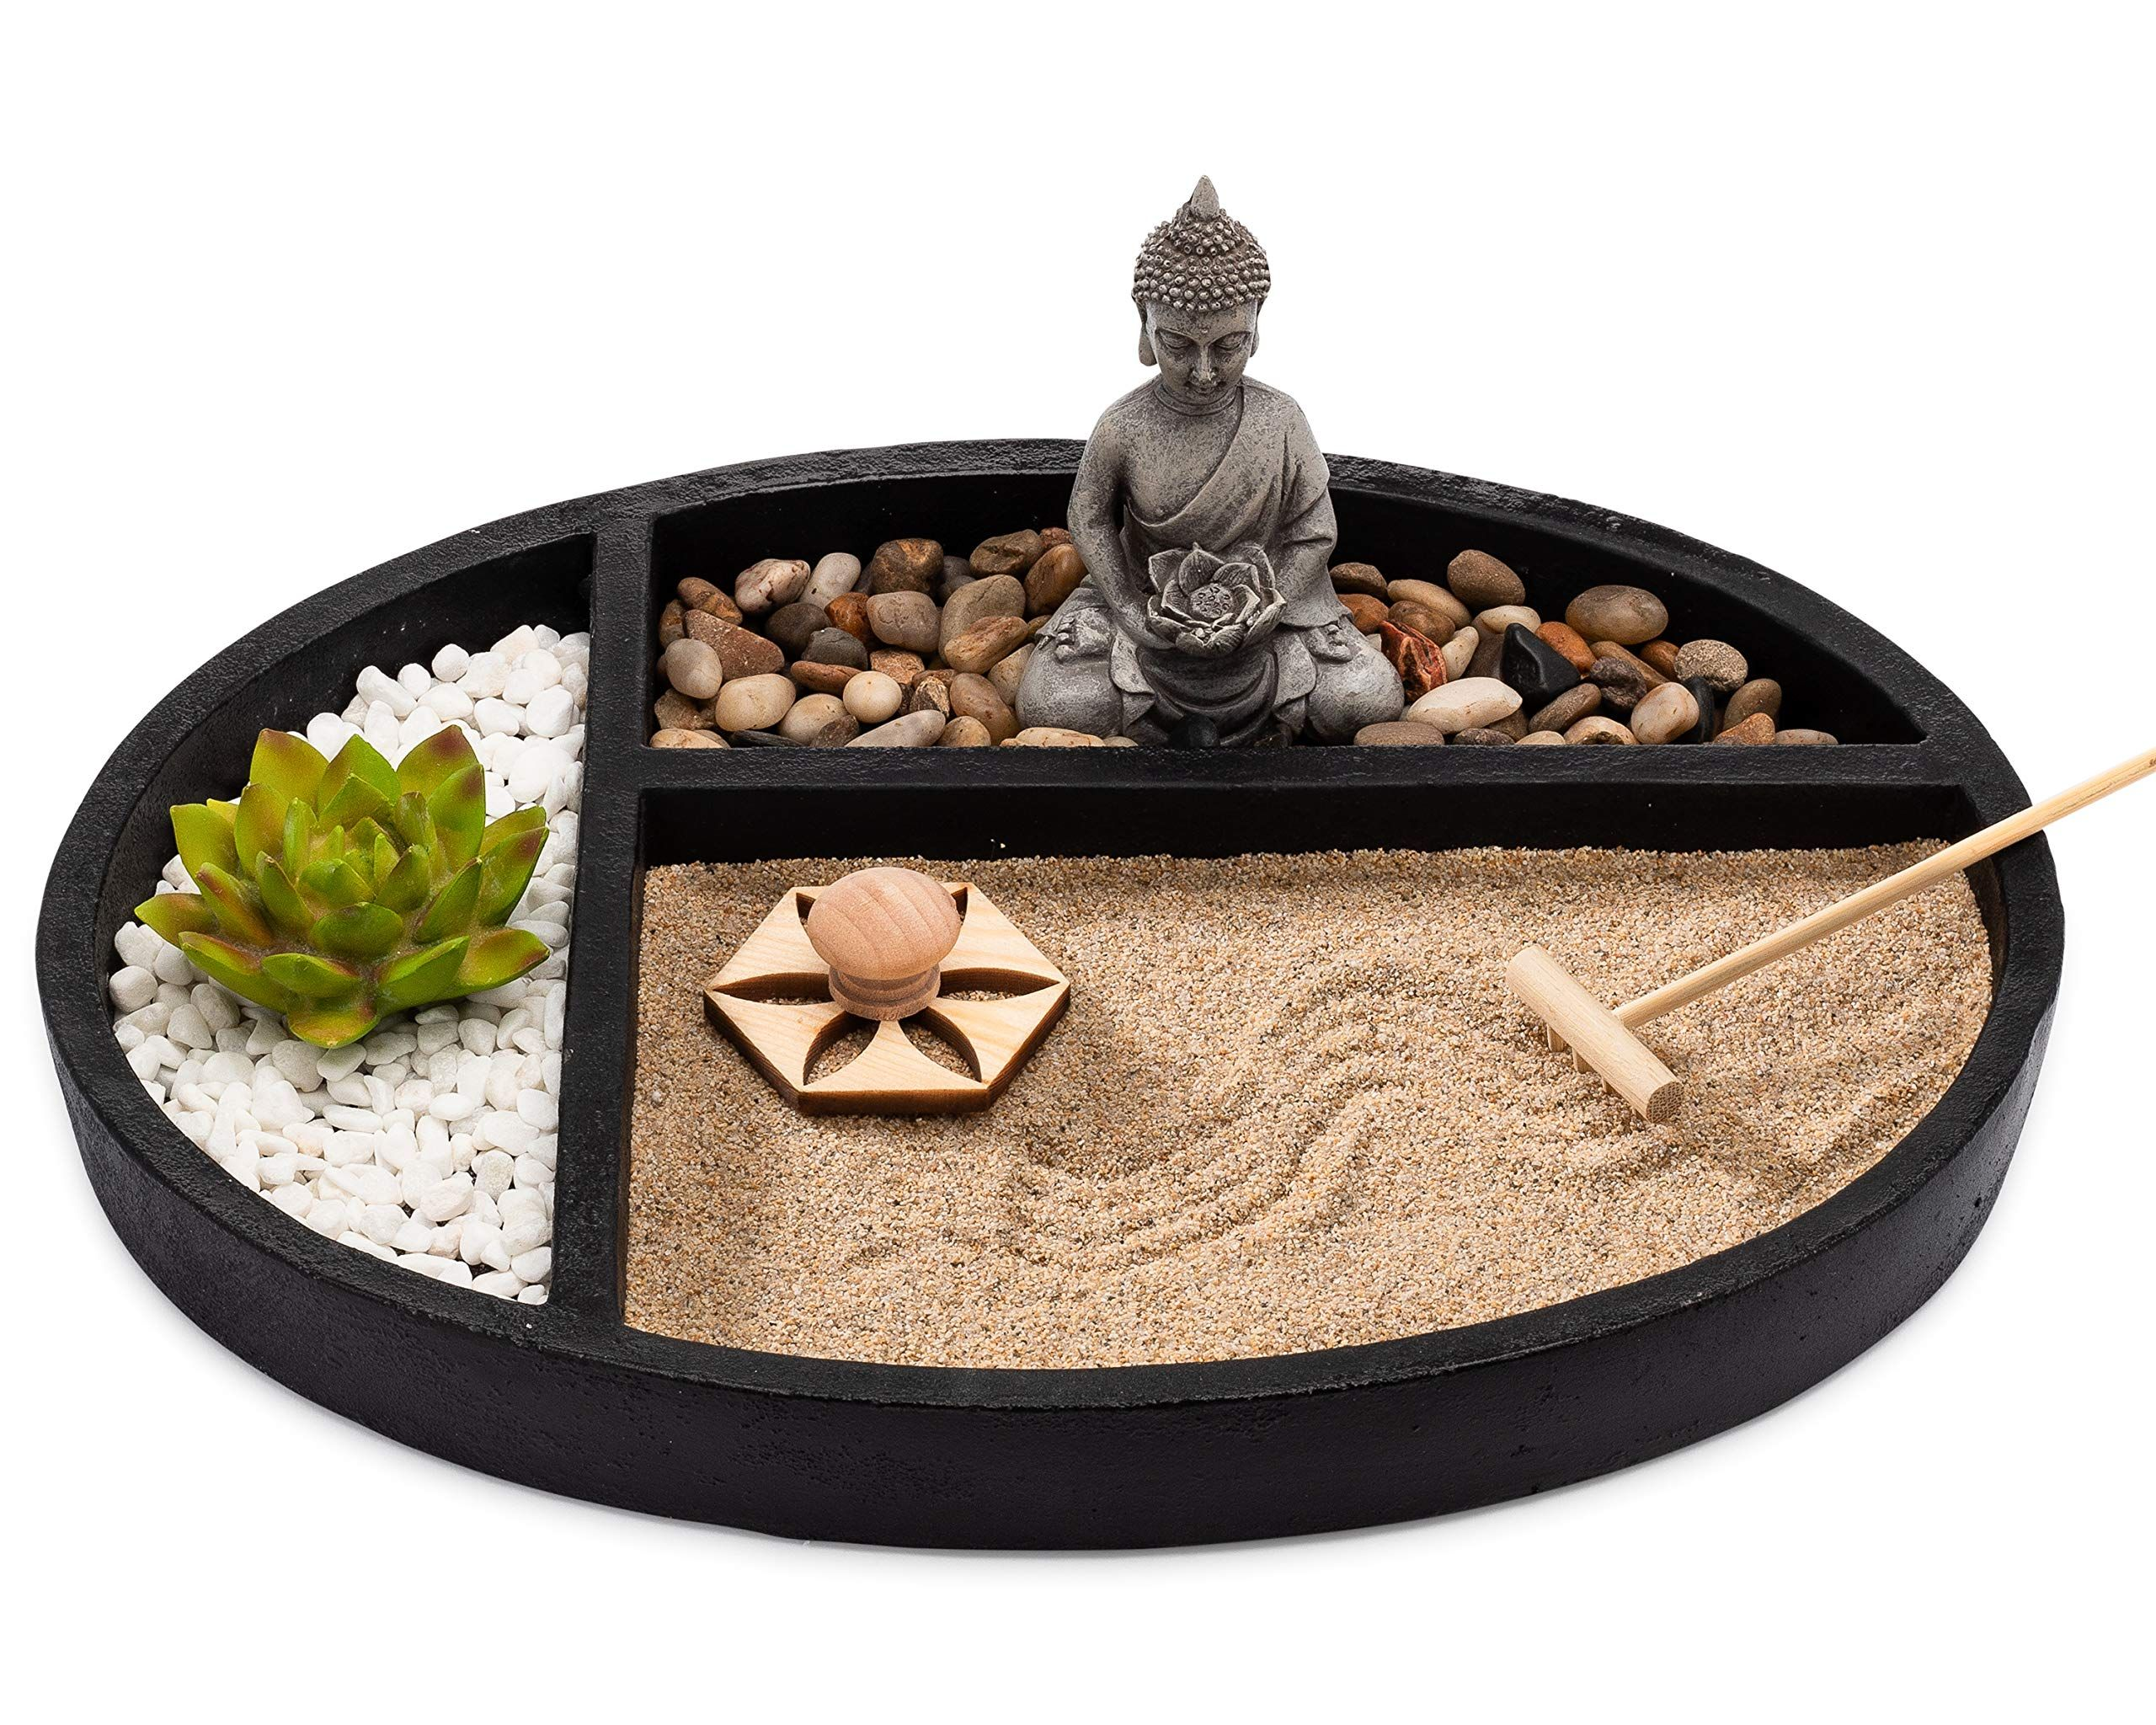 Asanaliving Desktop Zen Sand Garden With Concrete Base Meditating Buddha Statue Bamboo Rake Stamp And Faux Lotus Pla Zen Sand Garden Mini Zen Garden Zen Garden